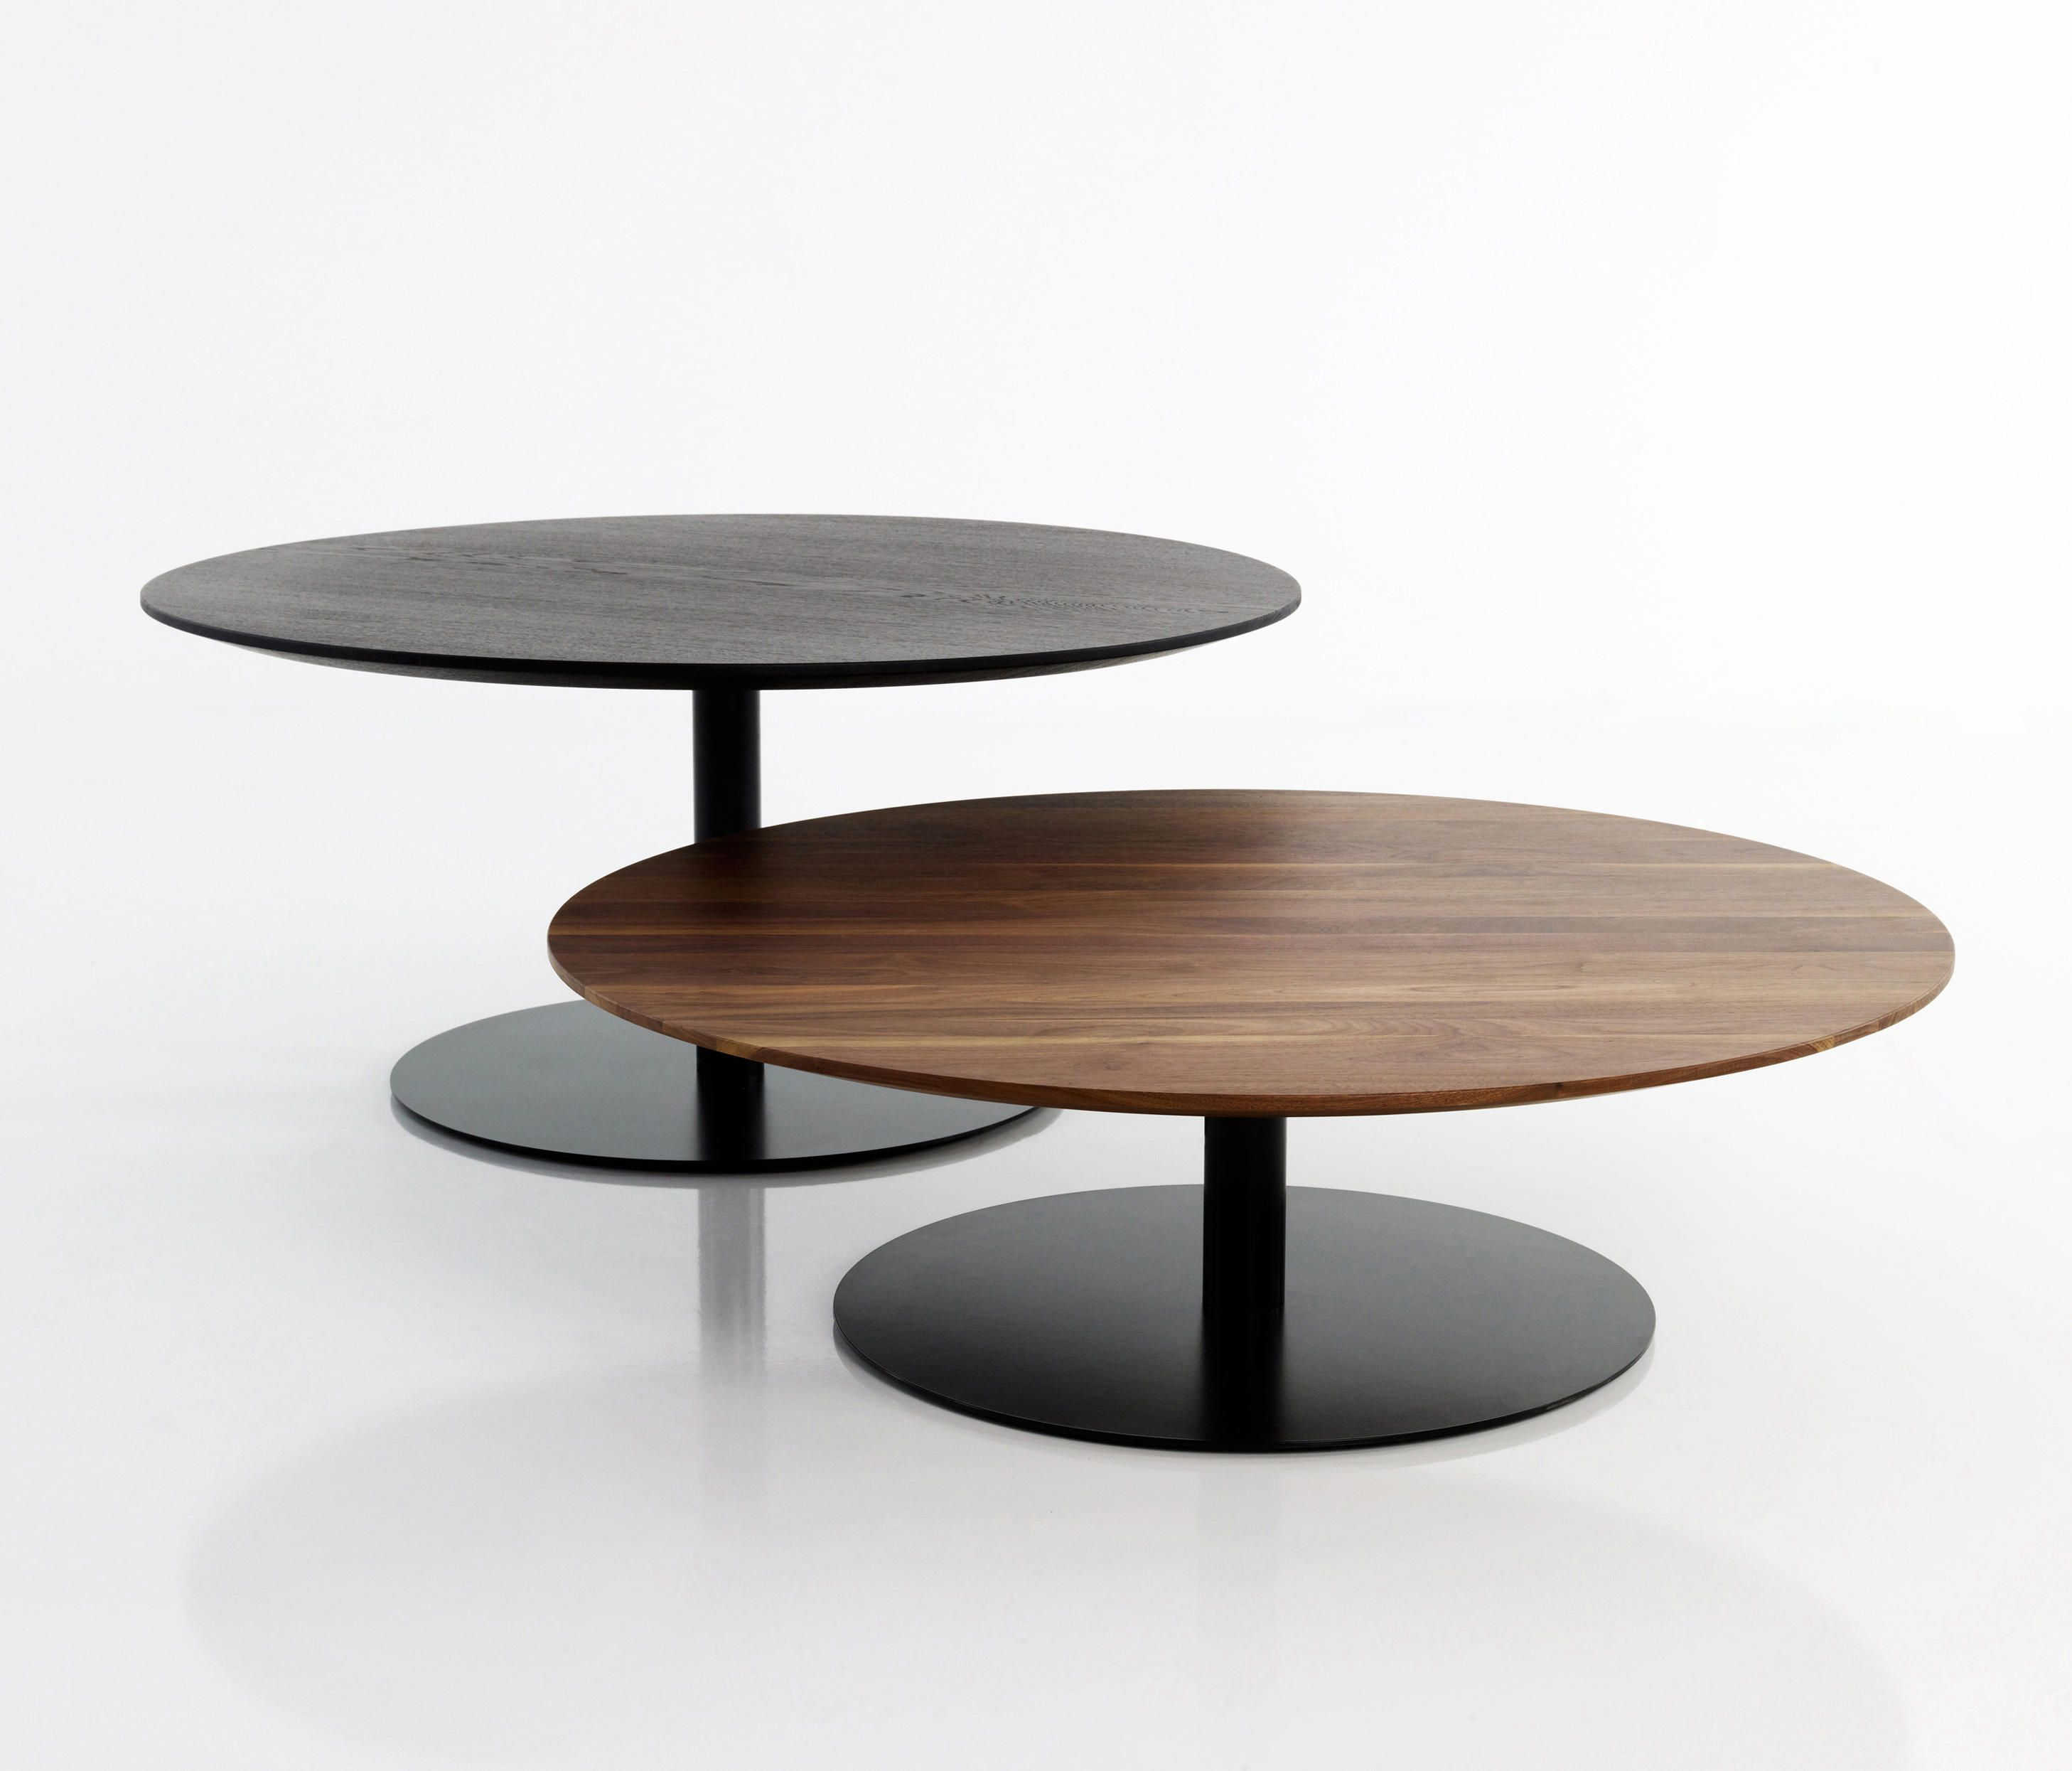 b  side table  designer lounge tables from more ✓ all  - b  side table  designer lounge tables from more ✓ all information ✓high